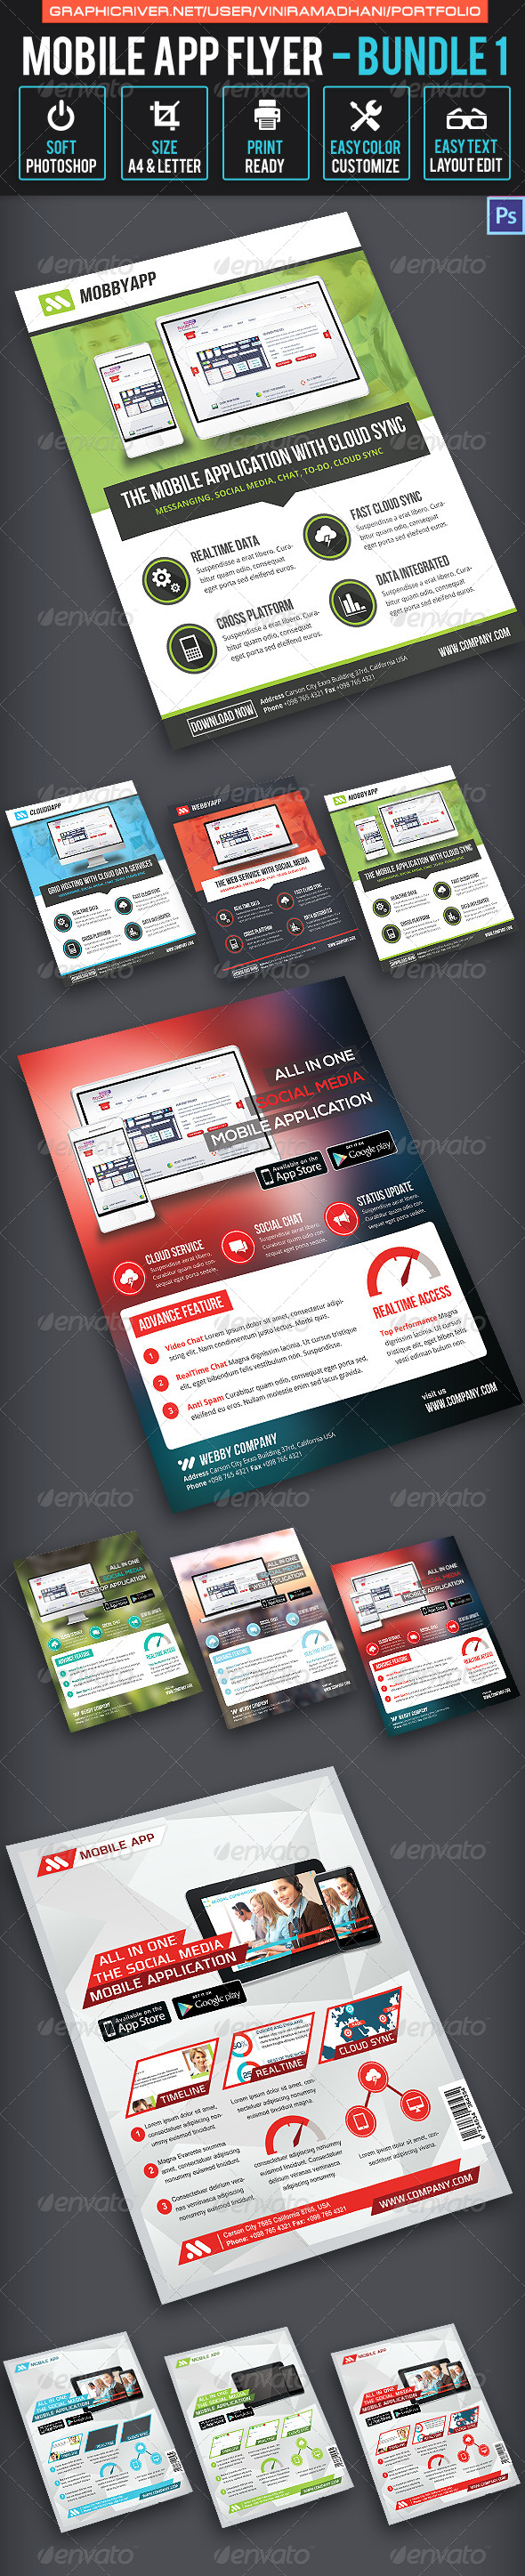 GraphicRiver Mobile App Flyer Bundle 1 7325667